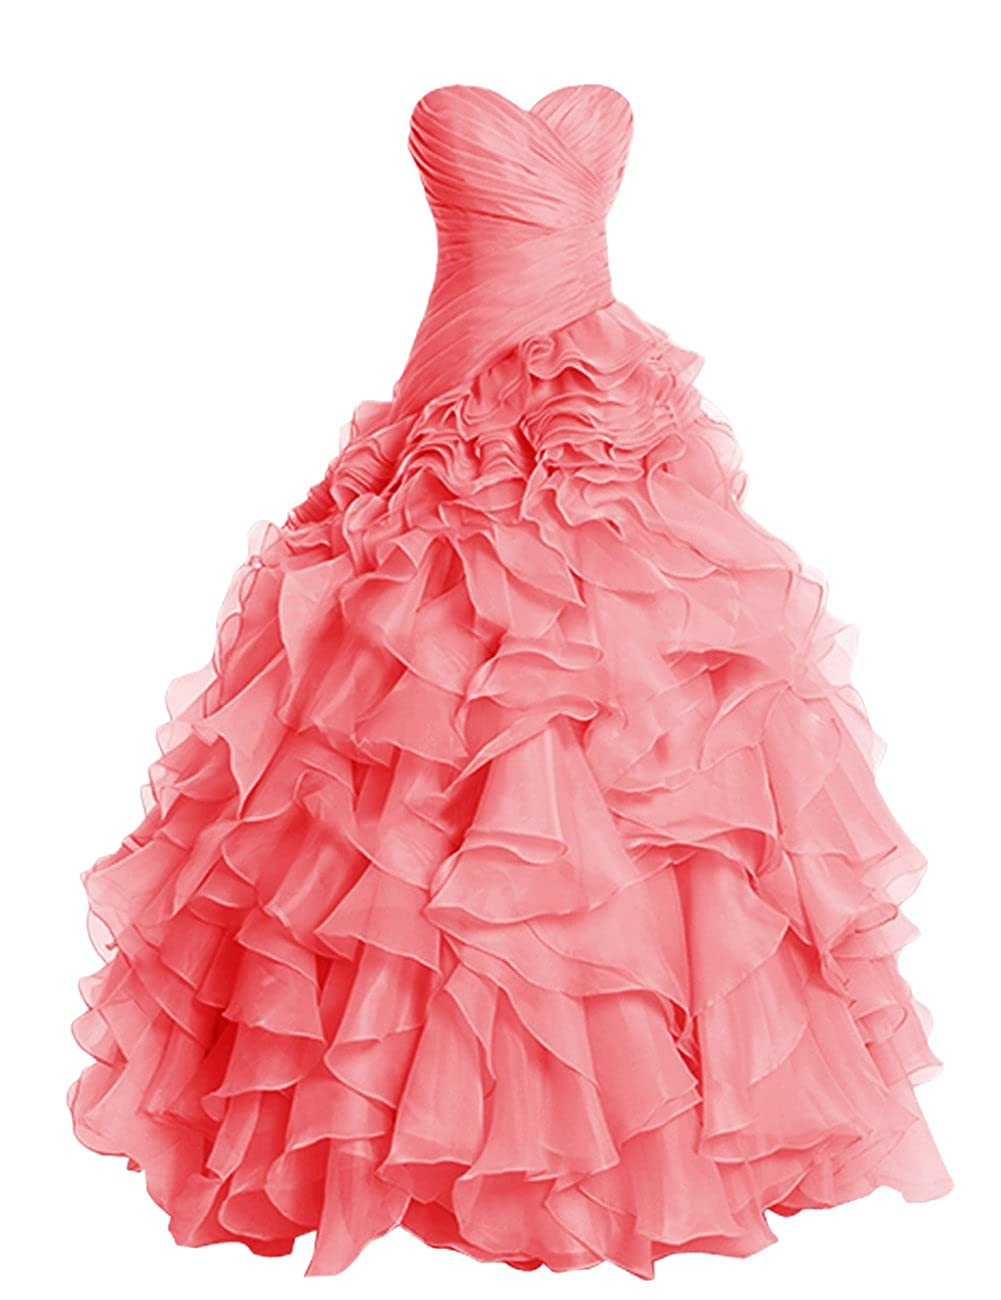 Coral Dresstells® Long Prom Dress Fluffy Bridesmaid Dress Wedding Dress with Ruffles